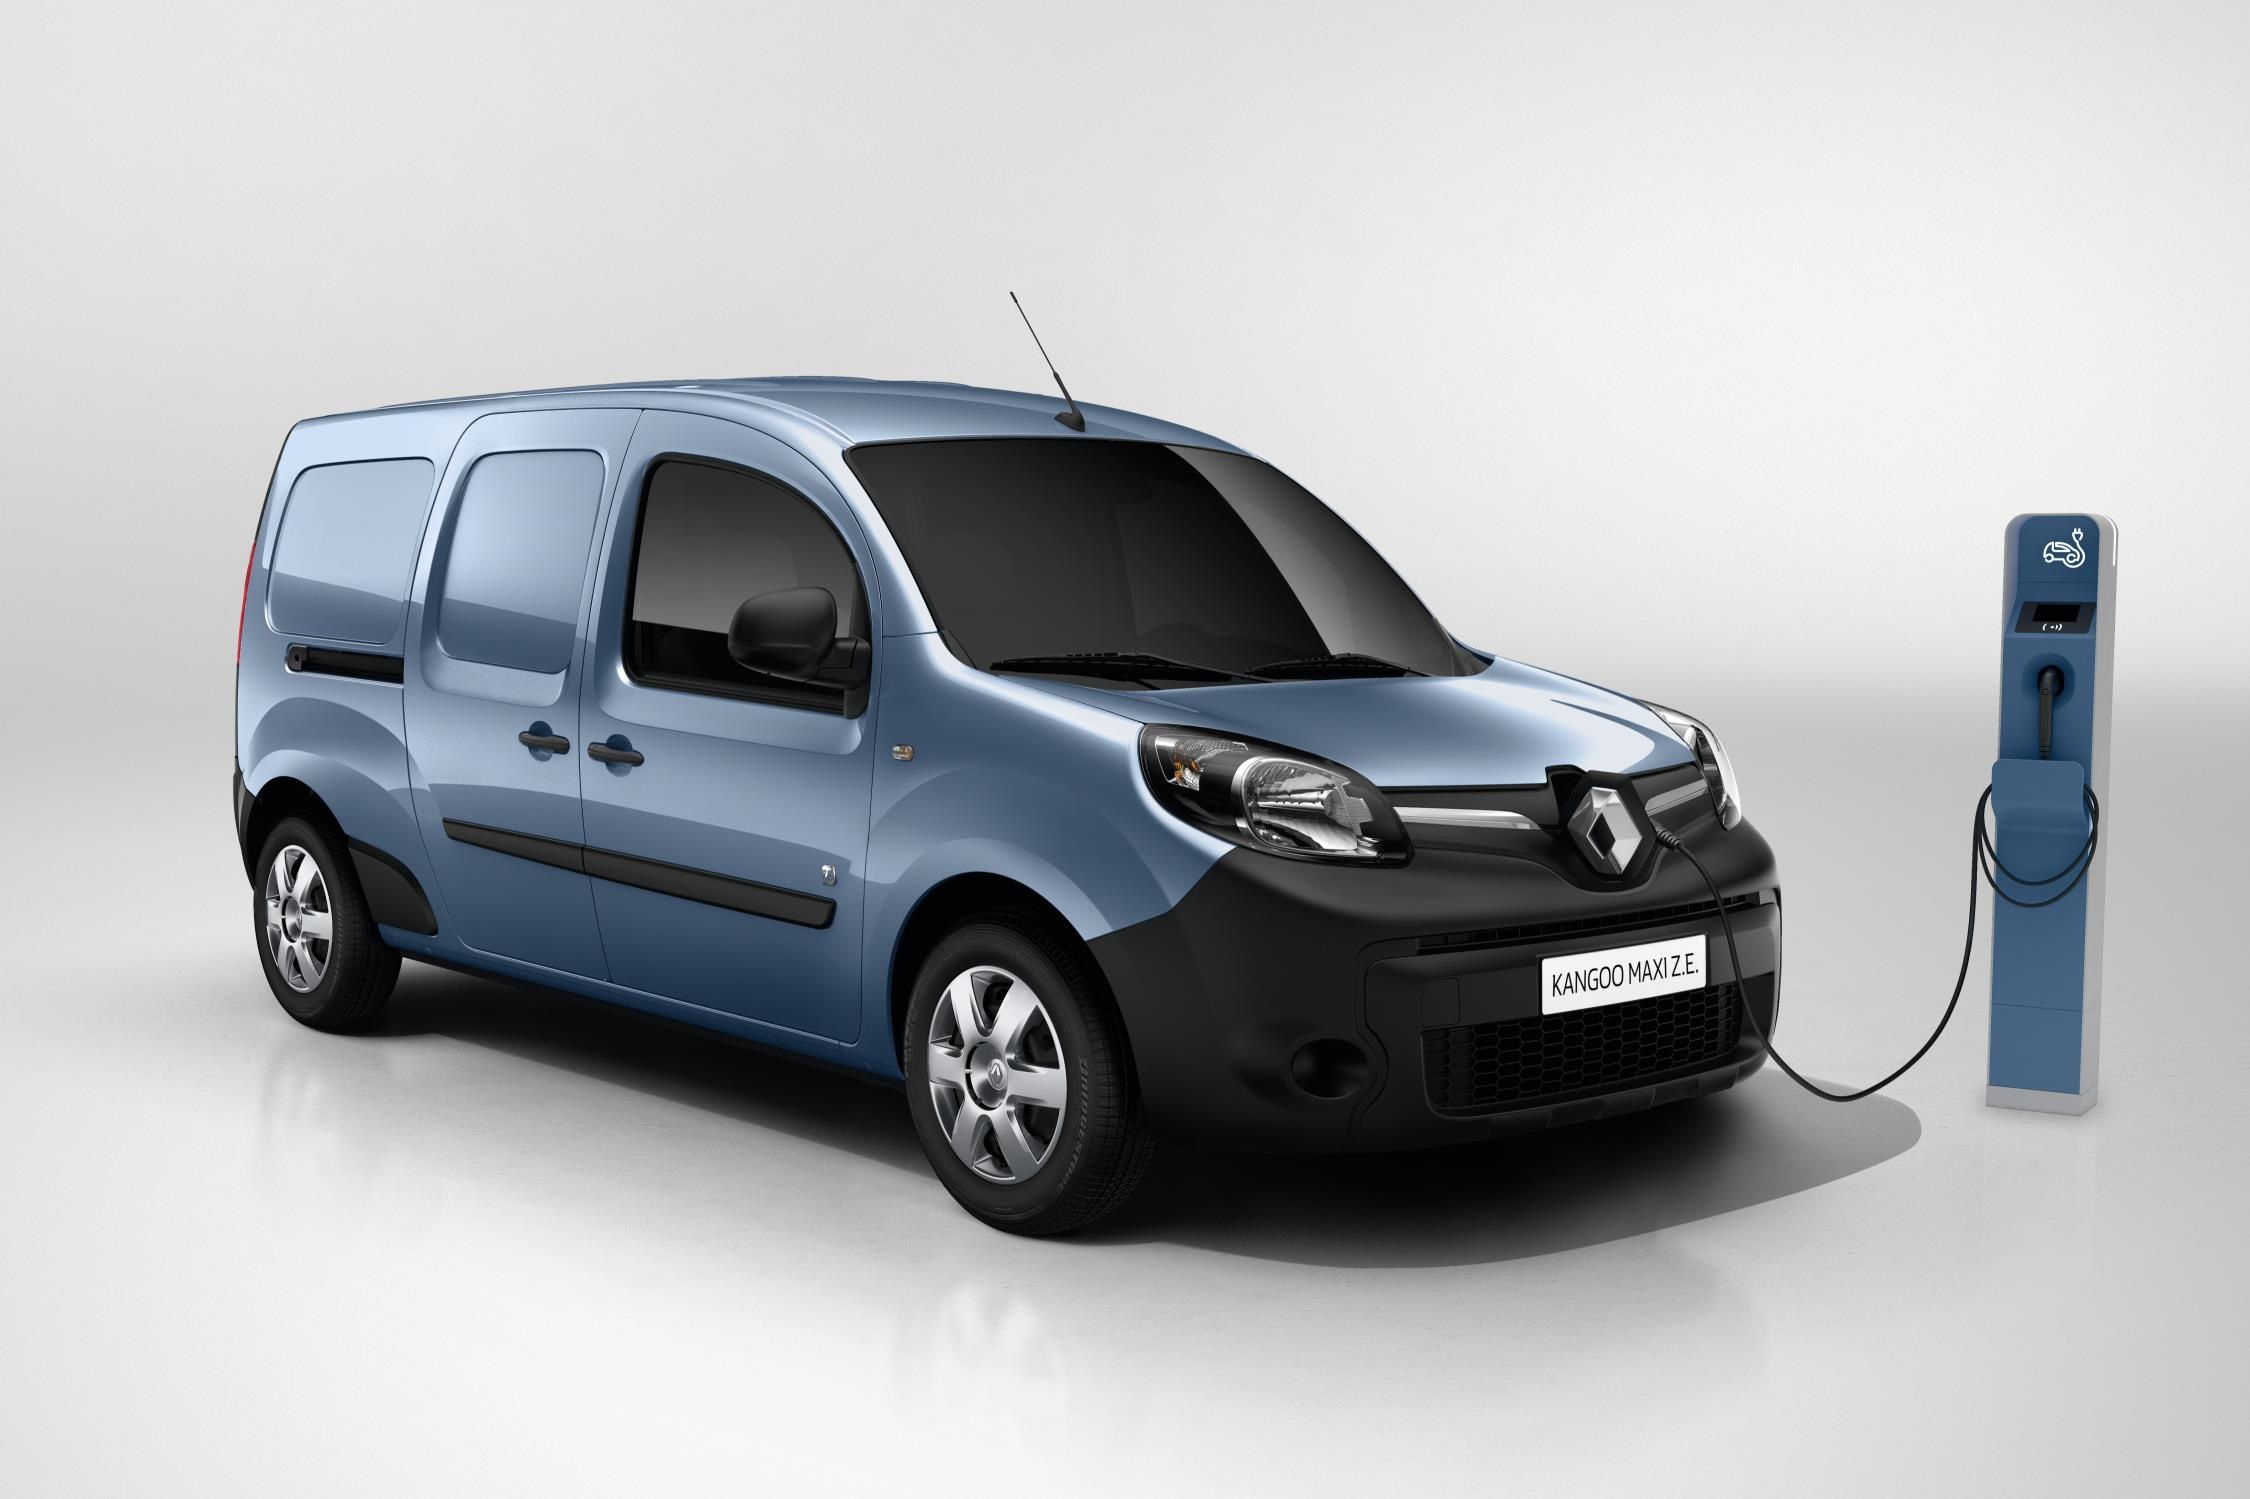 The all-electric Kangoo ZE - 5 low CO2 vans